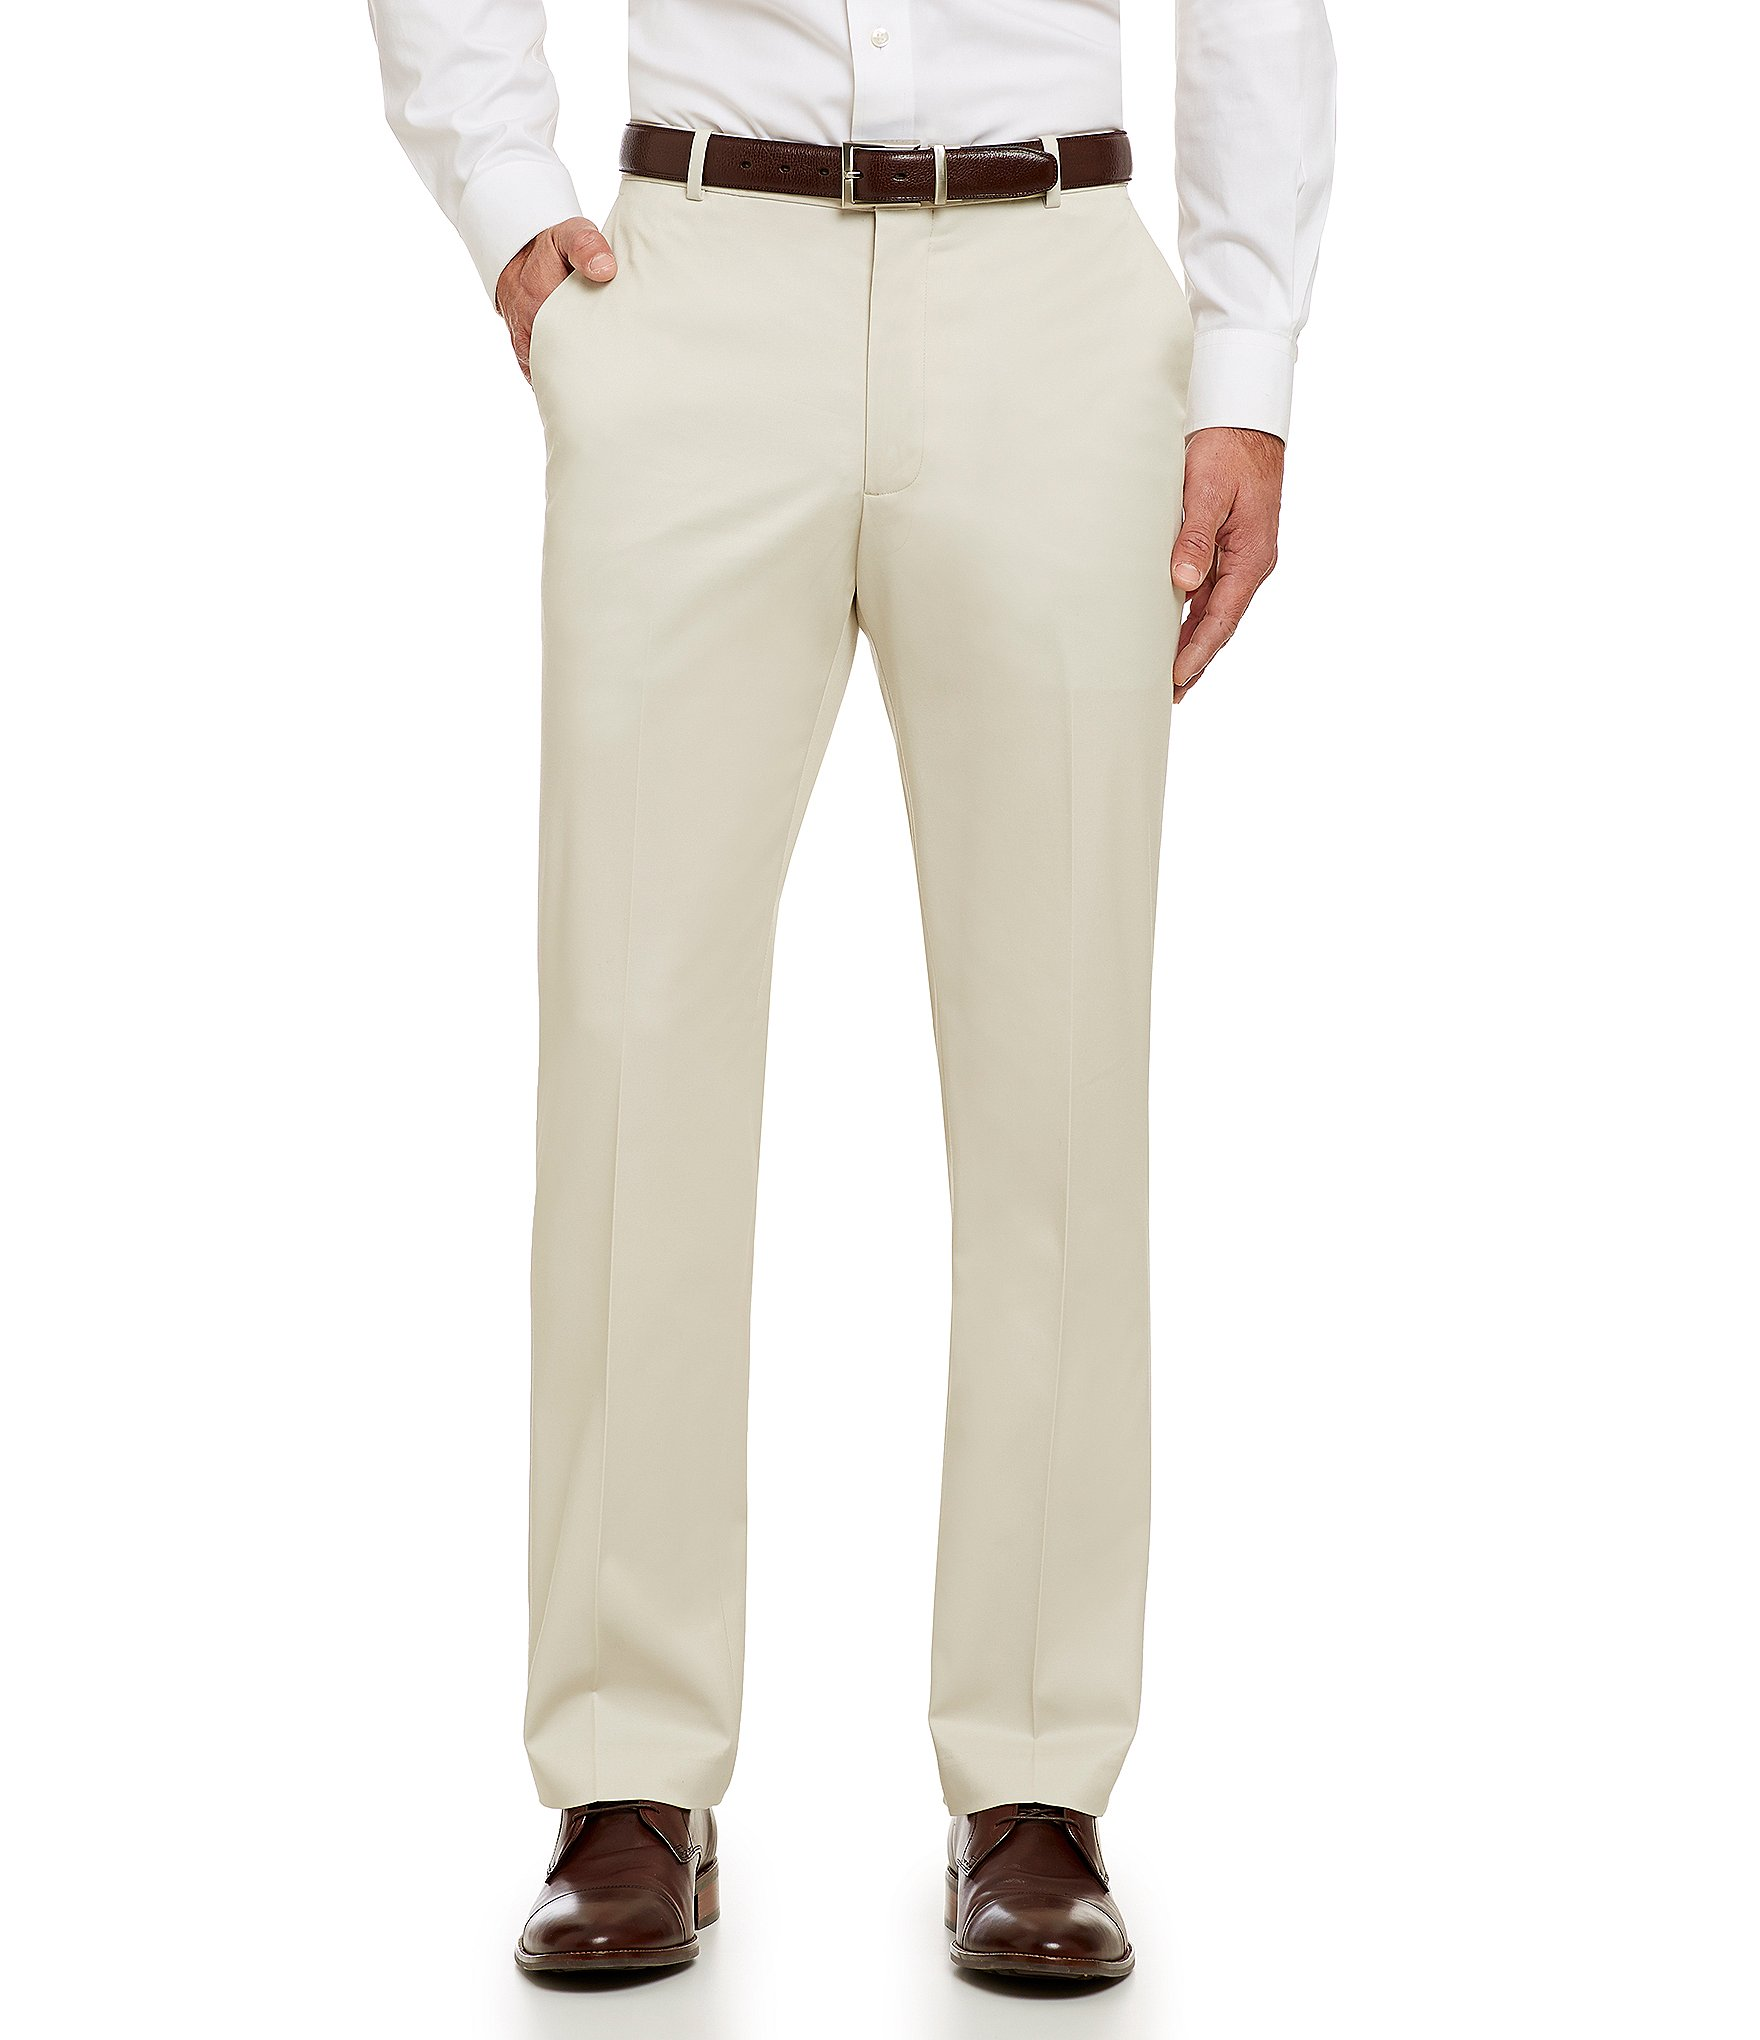 Perry Ellis Performance Luxe Tailored Fit Flat Front Pants